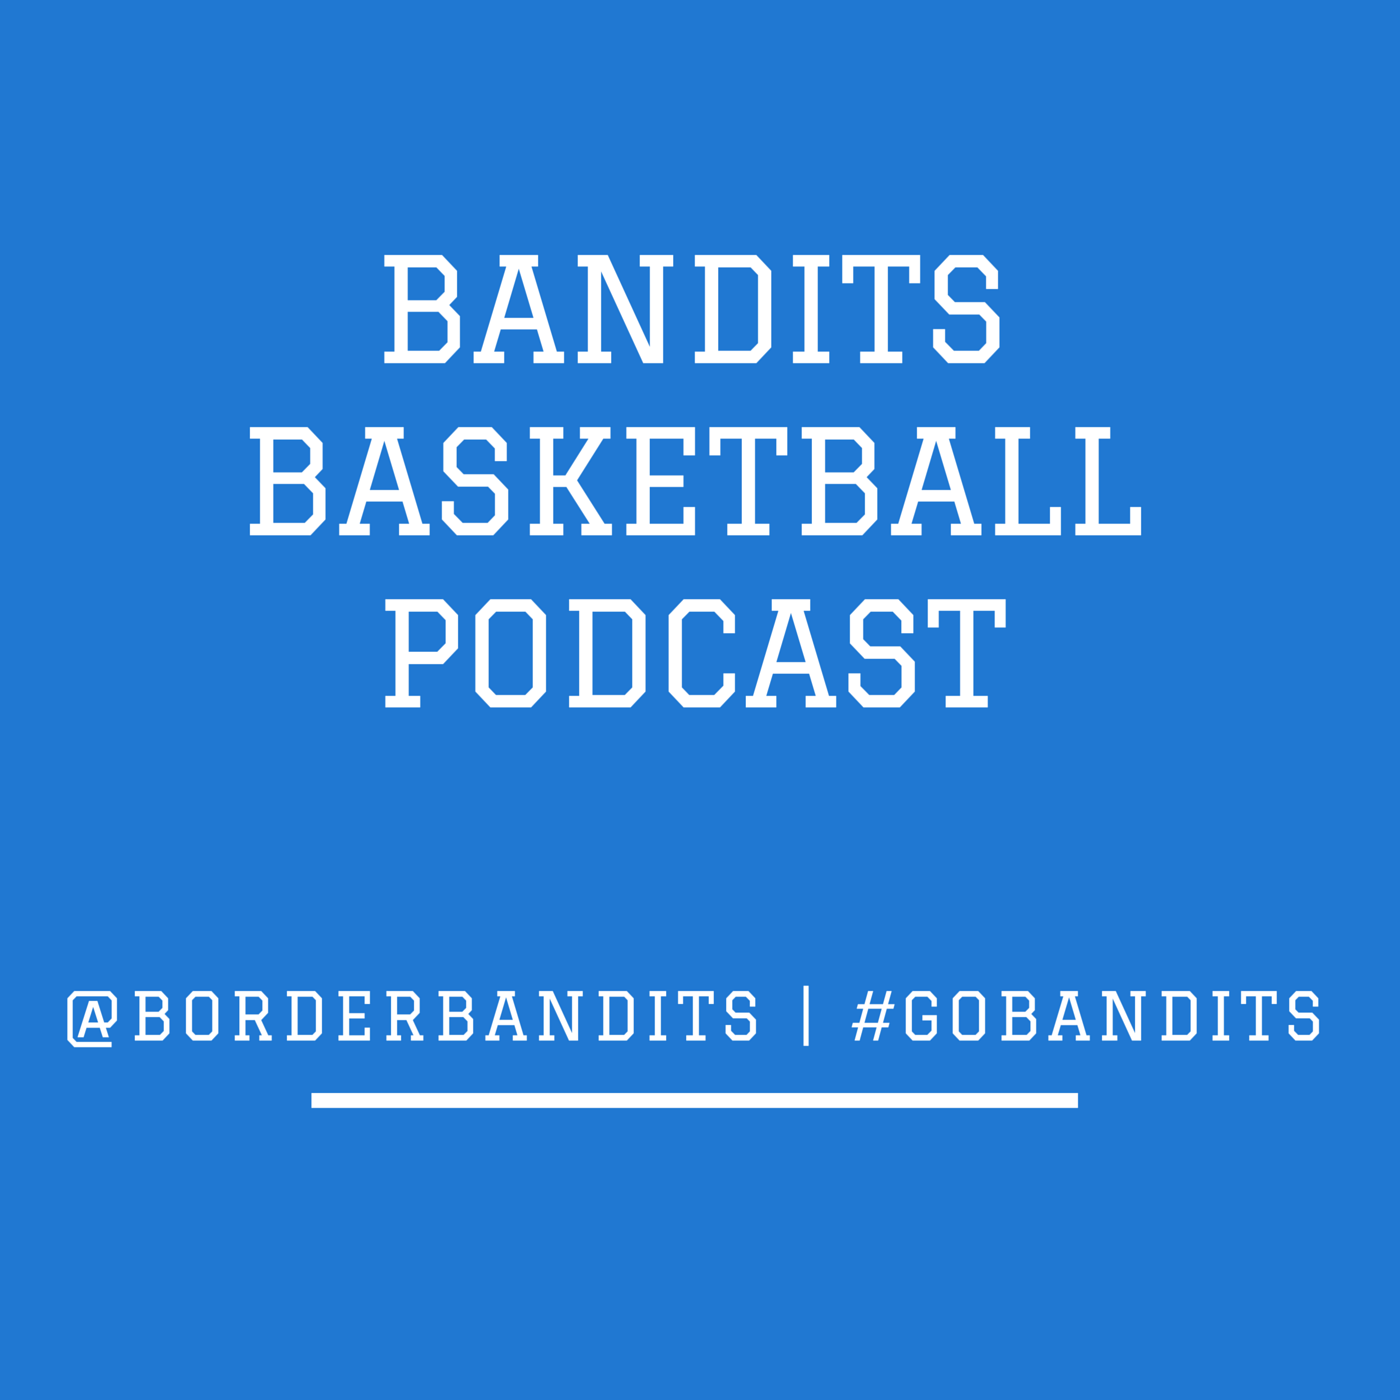 Bandits Basketball Podcast